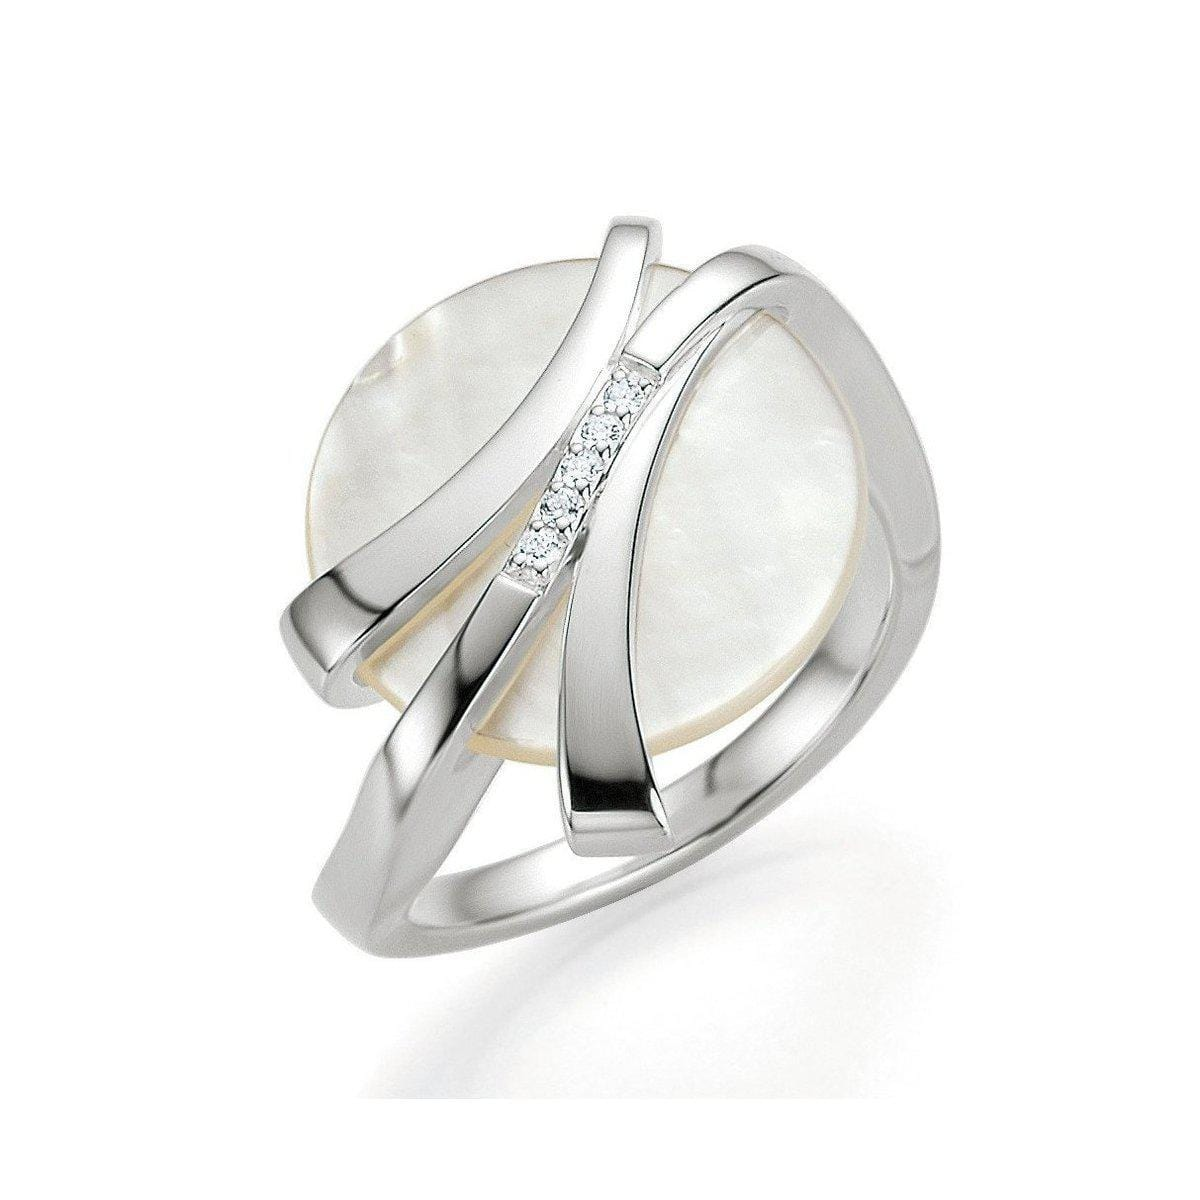 Sterling Silver Mother of Pearl and Brilliant Diamond Ring - 41/82634-Breuning-Renee Taylor Gallery